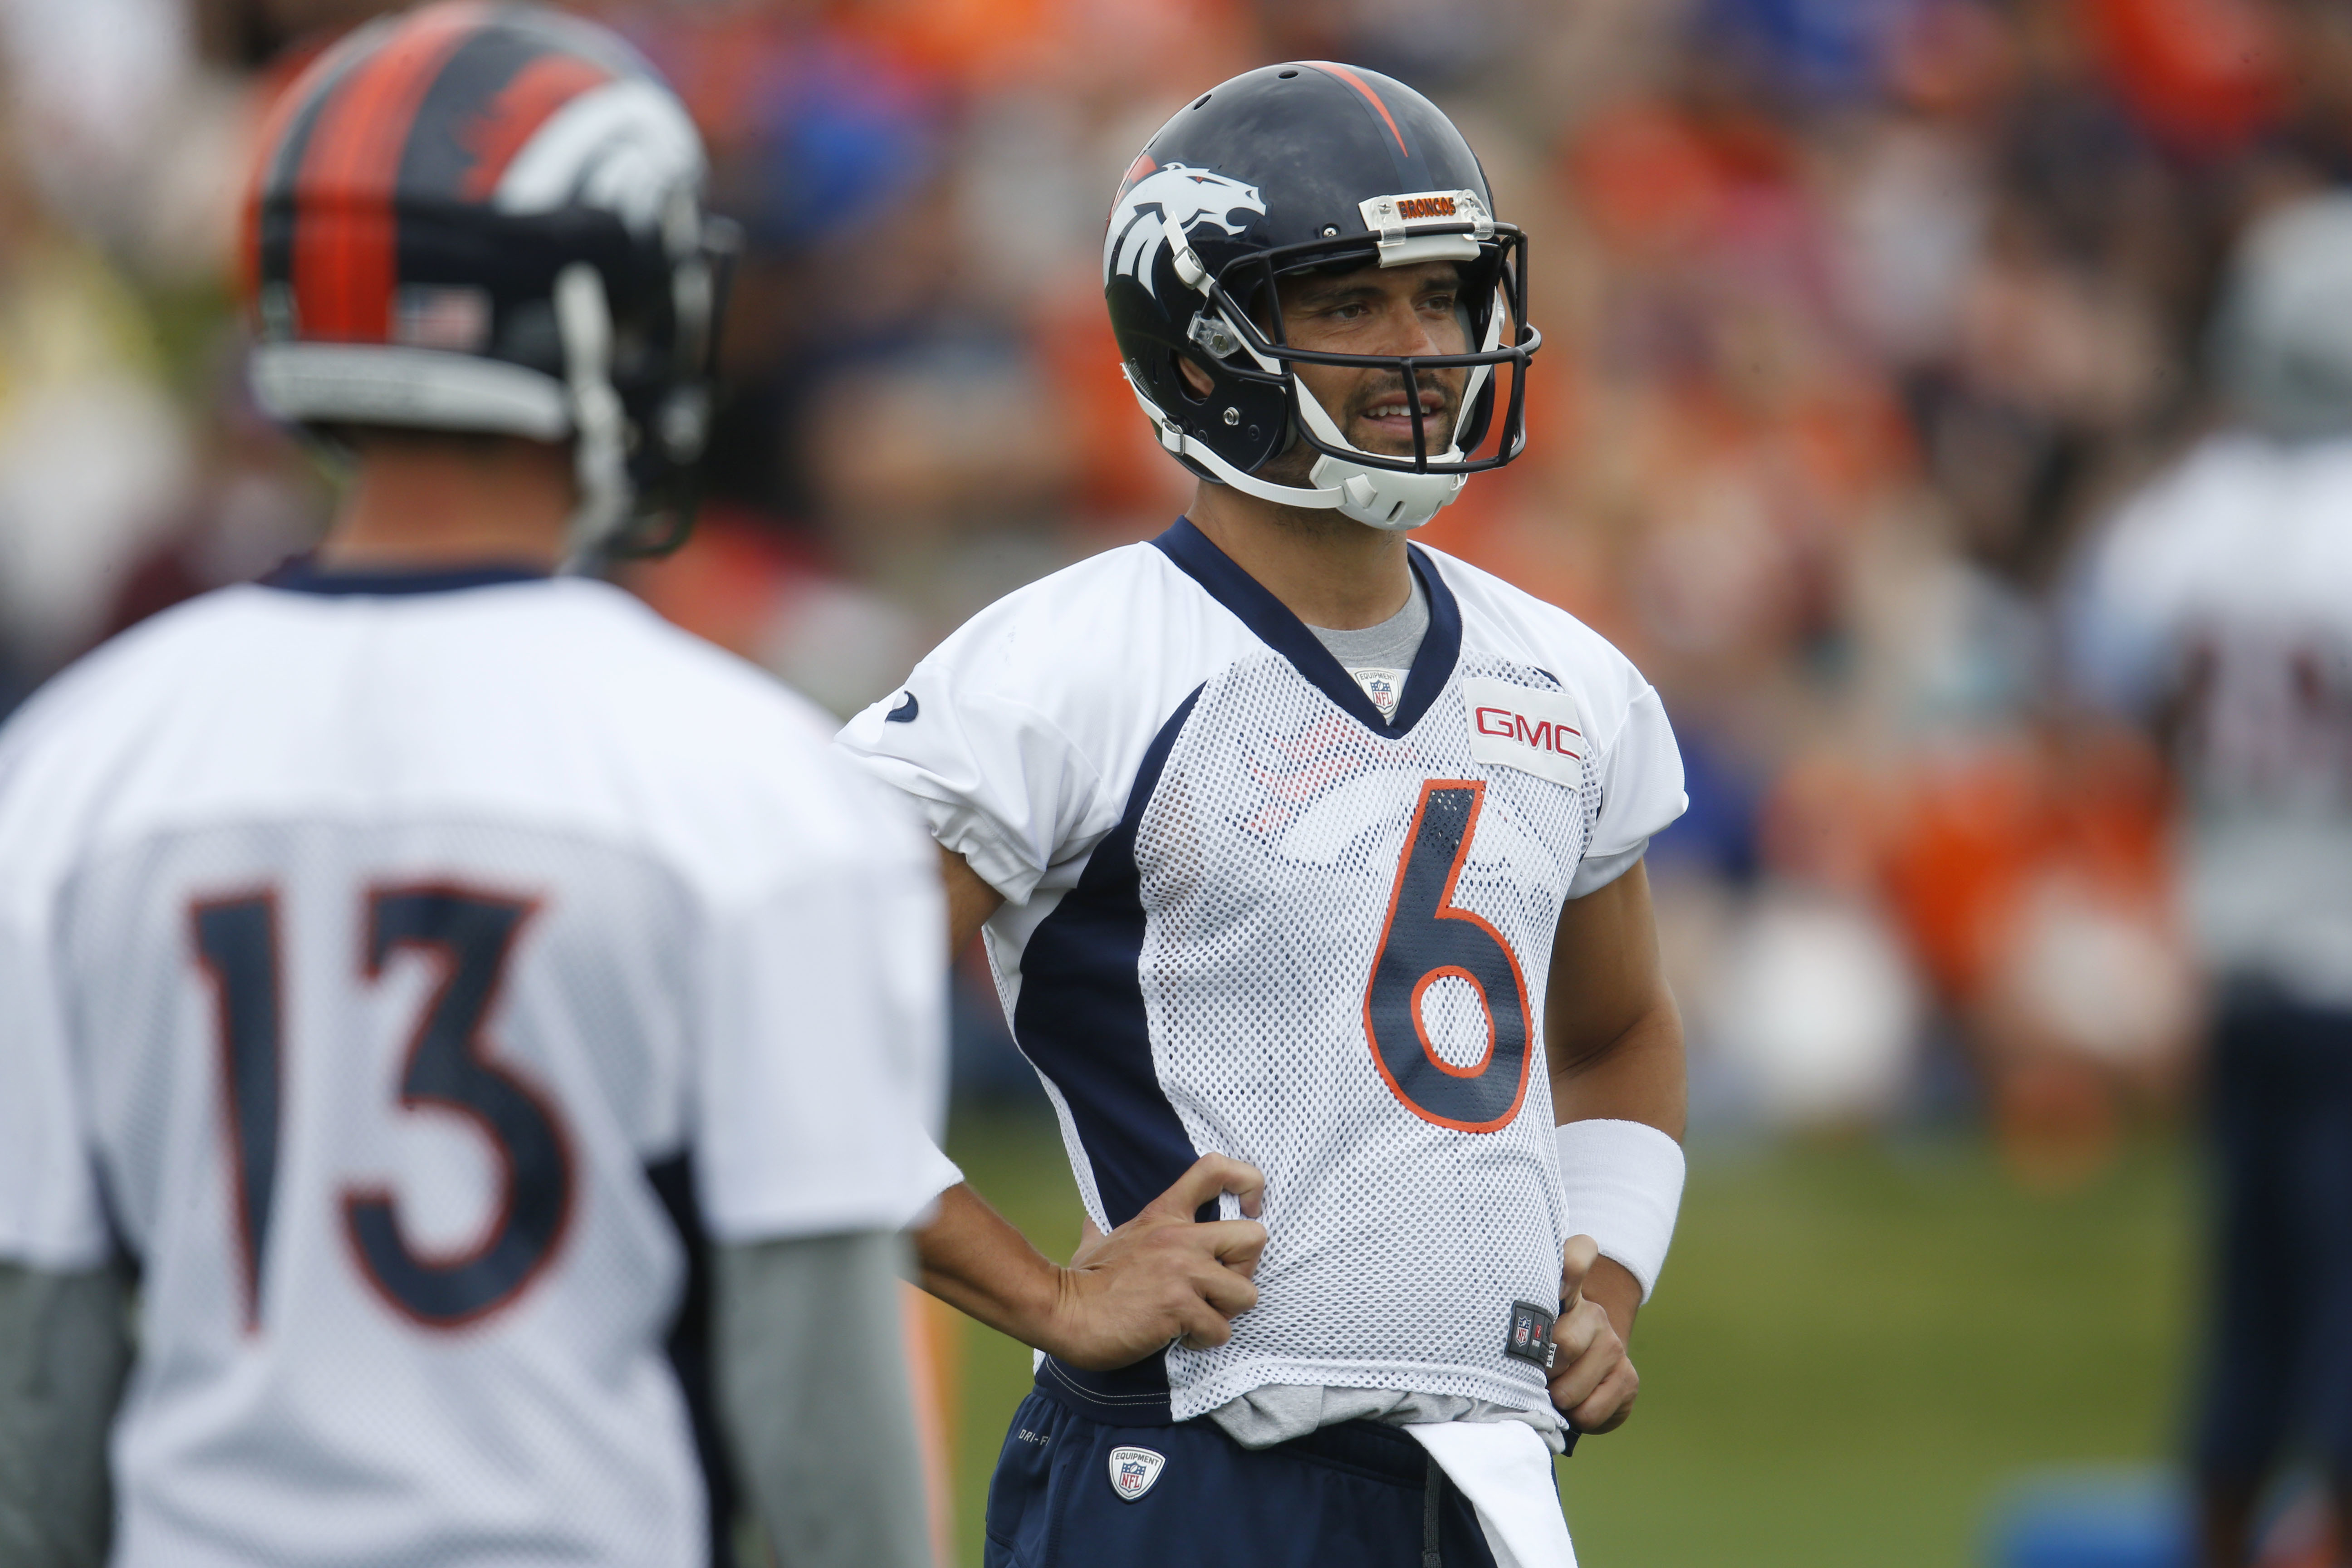 Denver Broncos quarterback Mark Sanchez, back, smiles as he jokes with quarterback Trevor Siemian as they take part in drills at the team's NFL football training camp Friday, Aug. 5, 2016 in Englewood, Colo. (AP Photo/David Zalubowski)